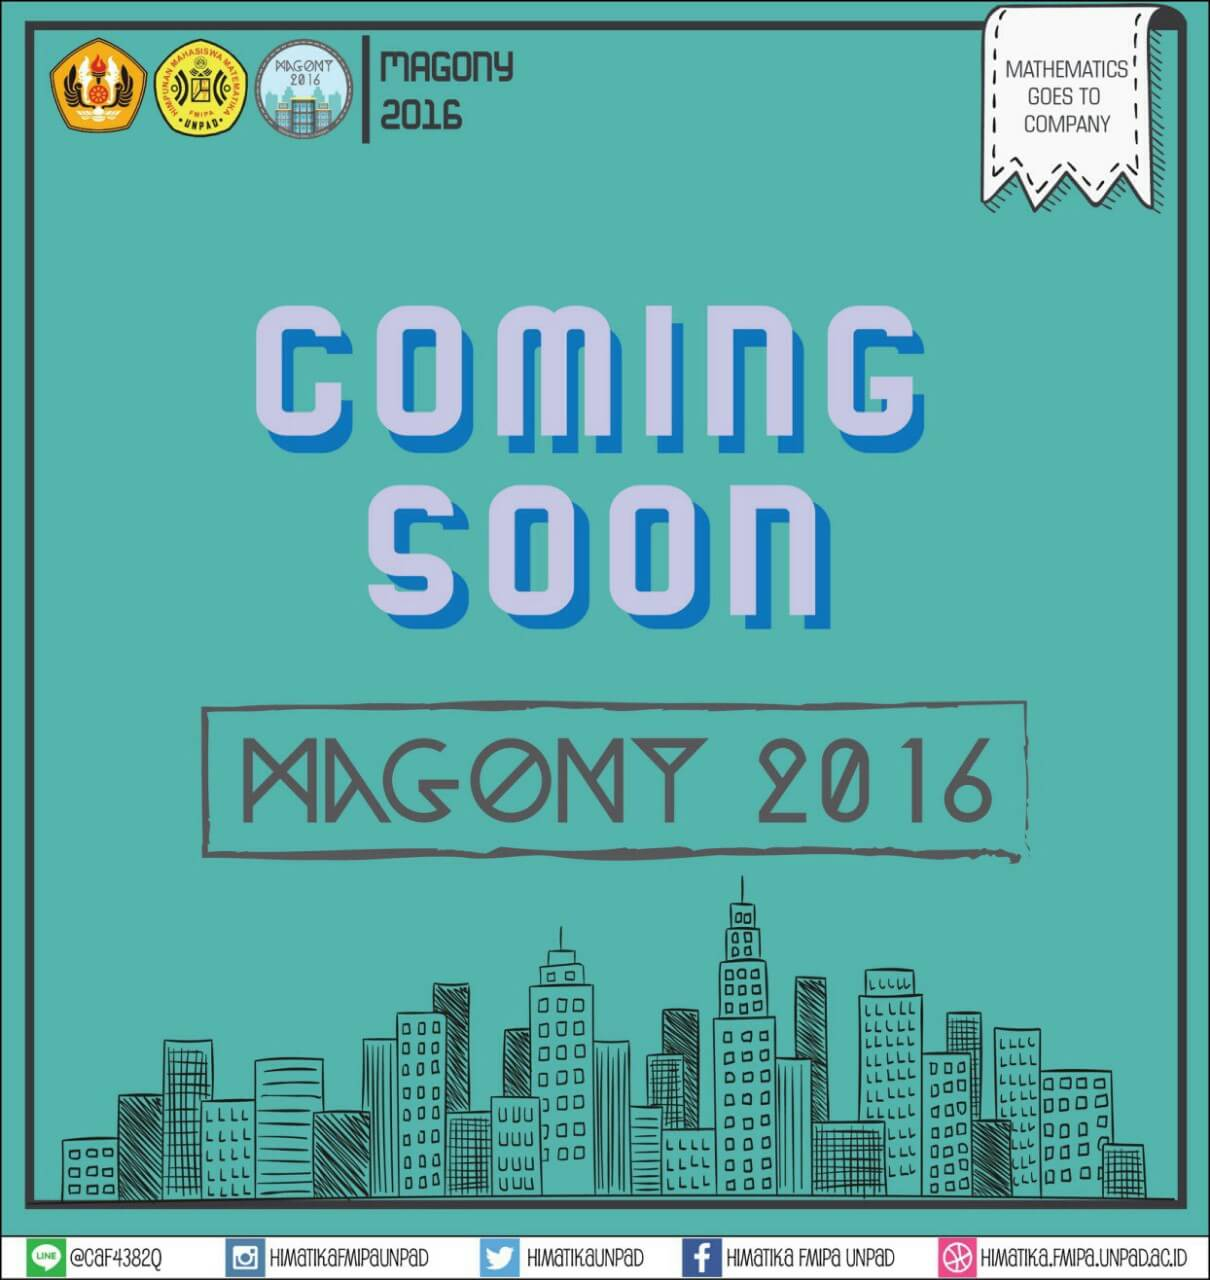 Coming Soon : Mathematics Goes to Company 2016